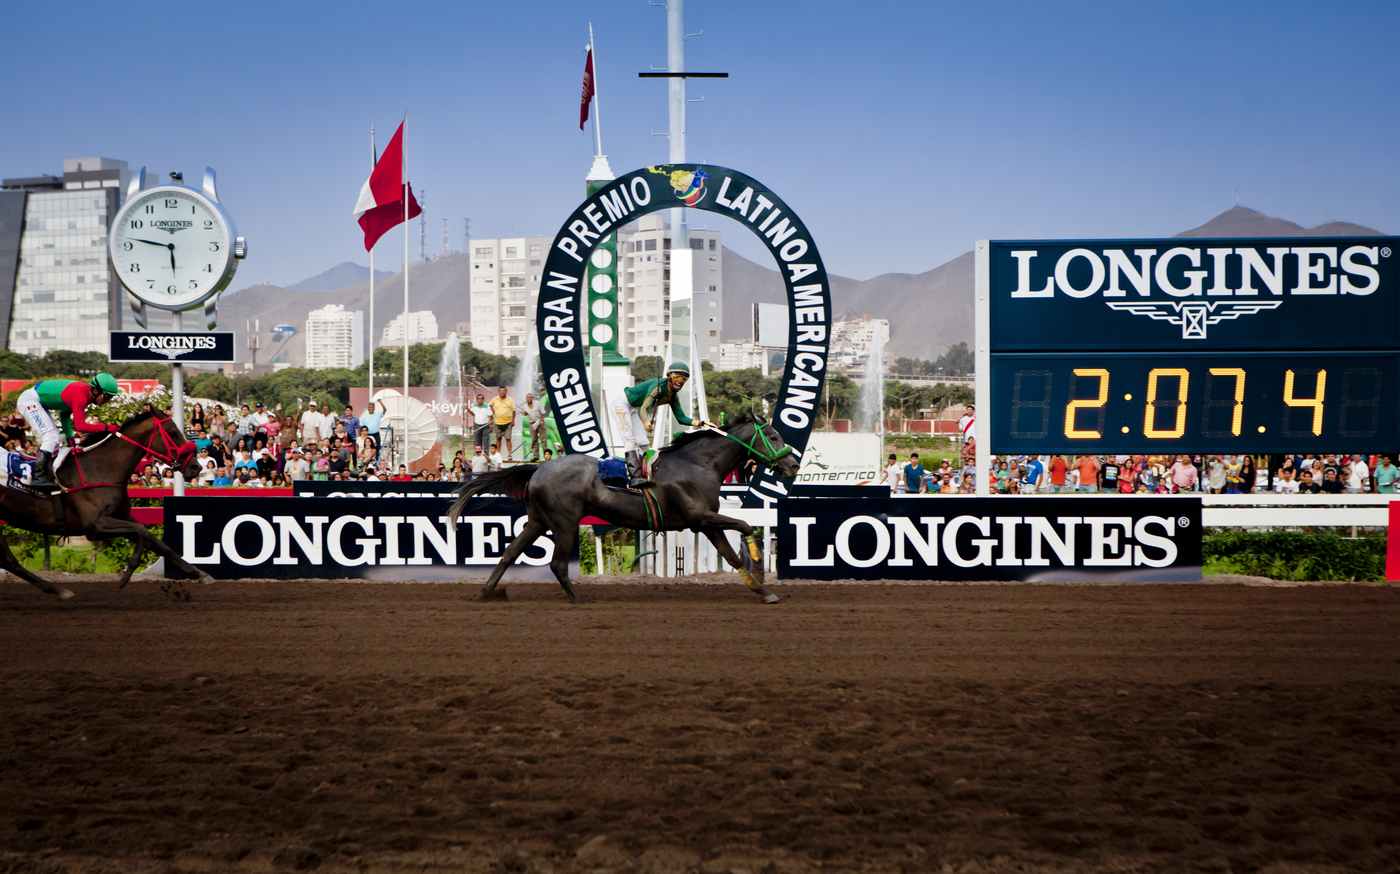 Longines Flat Racing Event: Juan Enrique on Lideris wins the Longines Gran Premio Latinoamericano 2